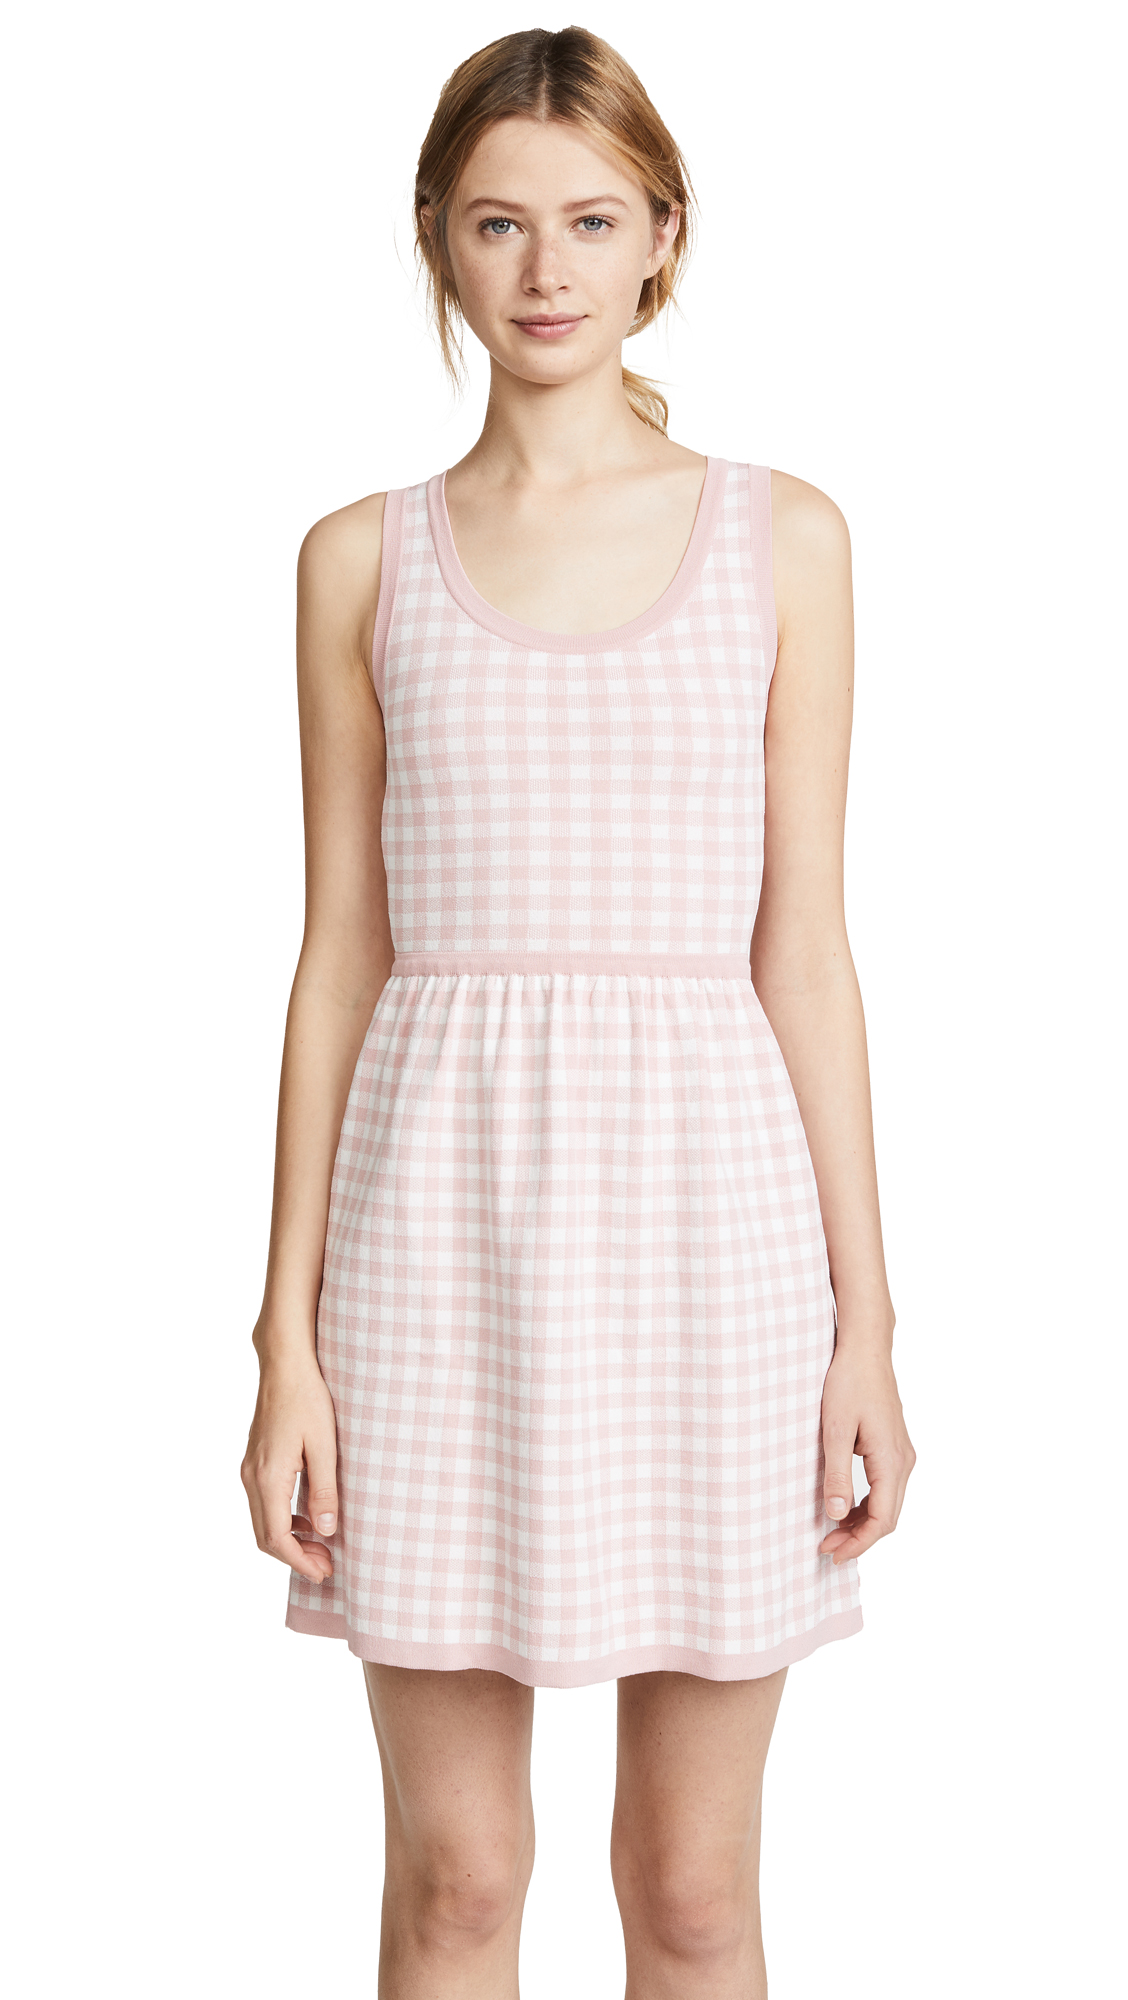 Boutique Moschino Gingham Sleeveless Dress - Pink/White